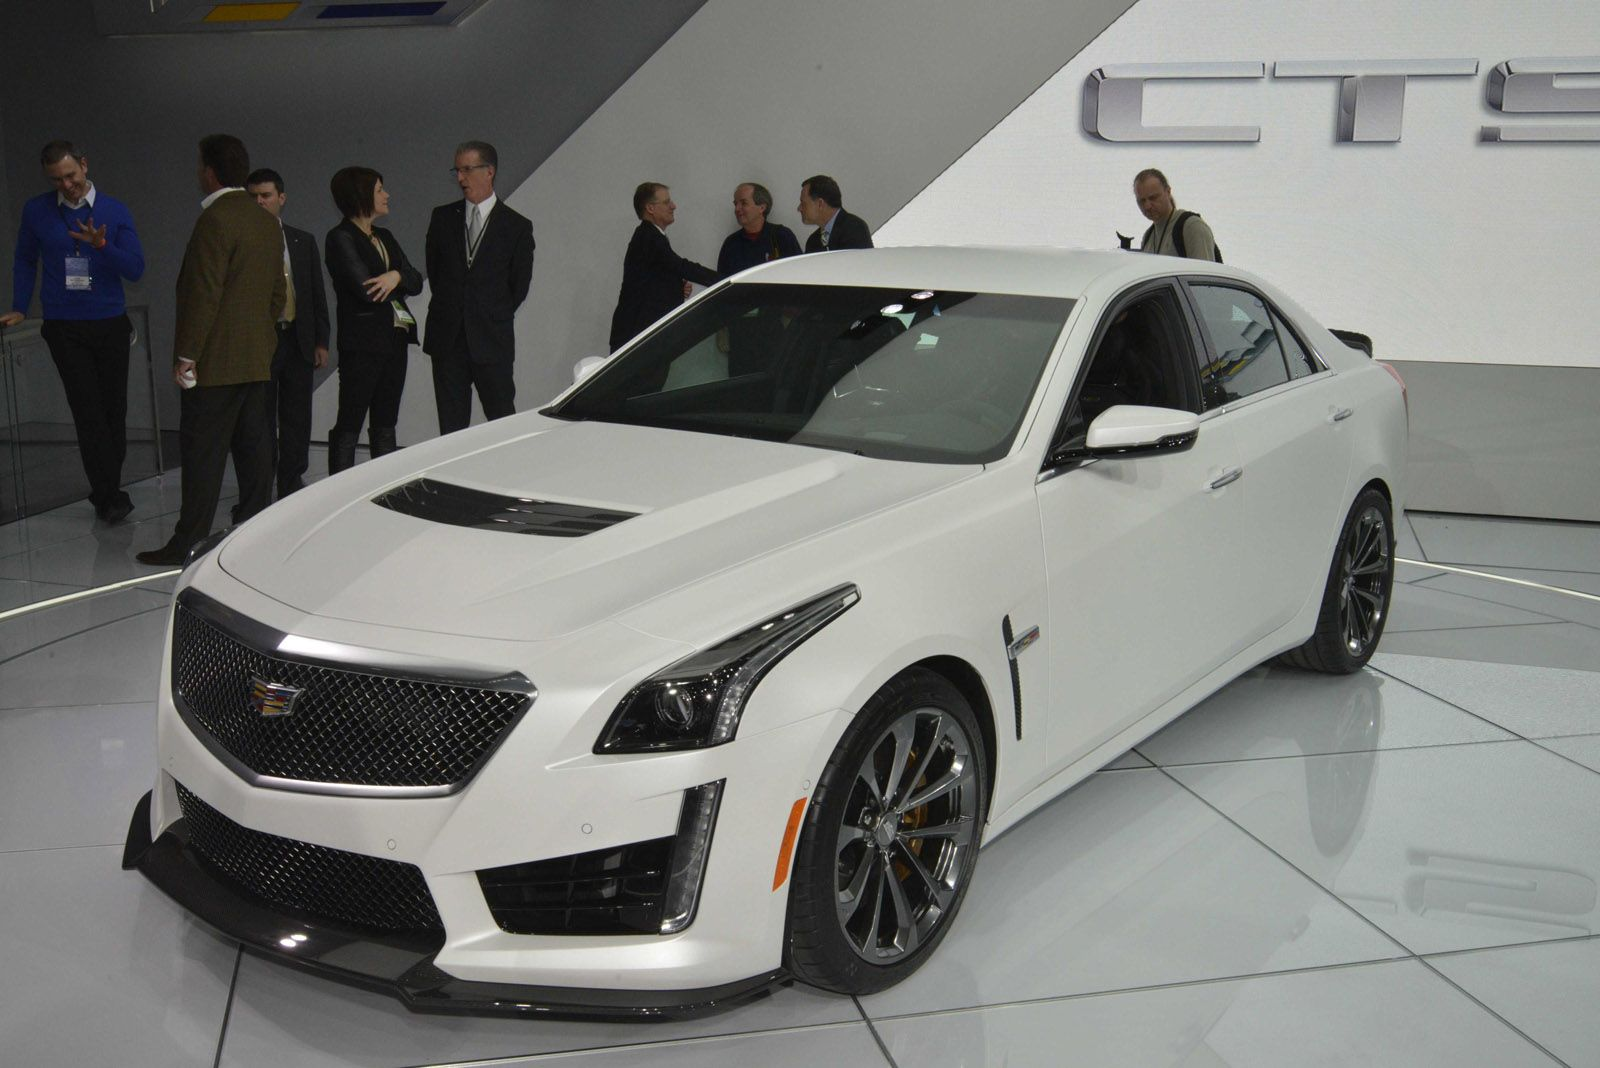 2016 cadillac cts v cadillac pinterest cadillac cts cadillac and cars. Black Bedroom Furniture Sets. Home Design Ideas